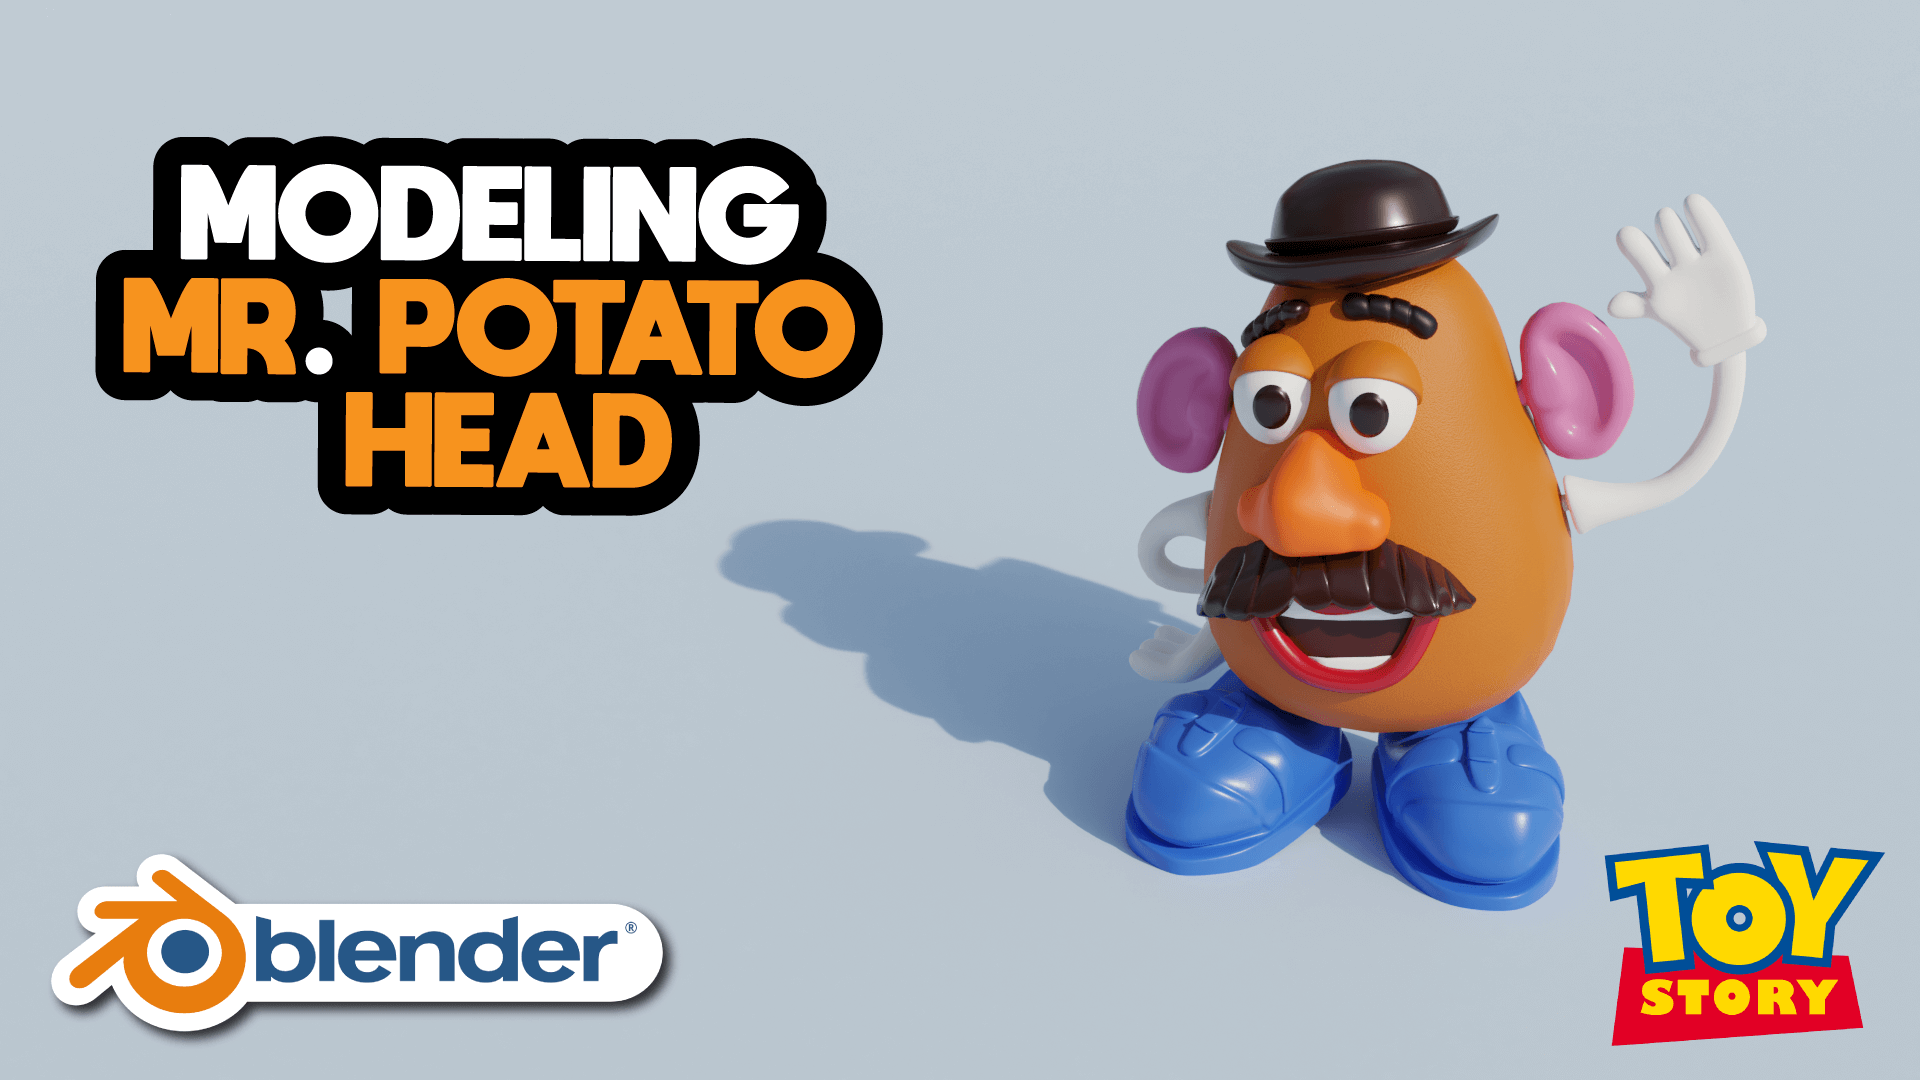 Mr. Potato Head Toy Story Character 3D Blender Academy Course